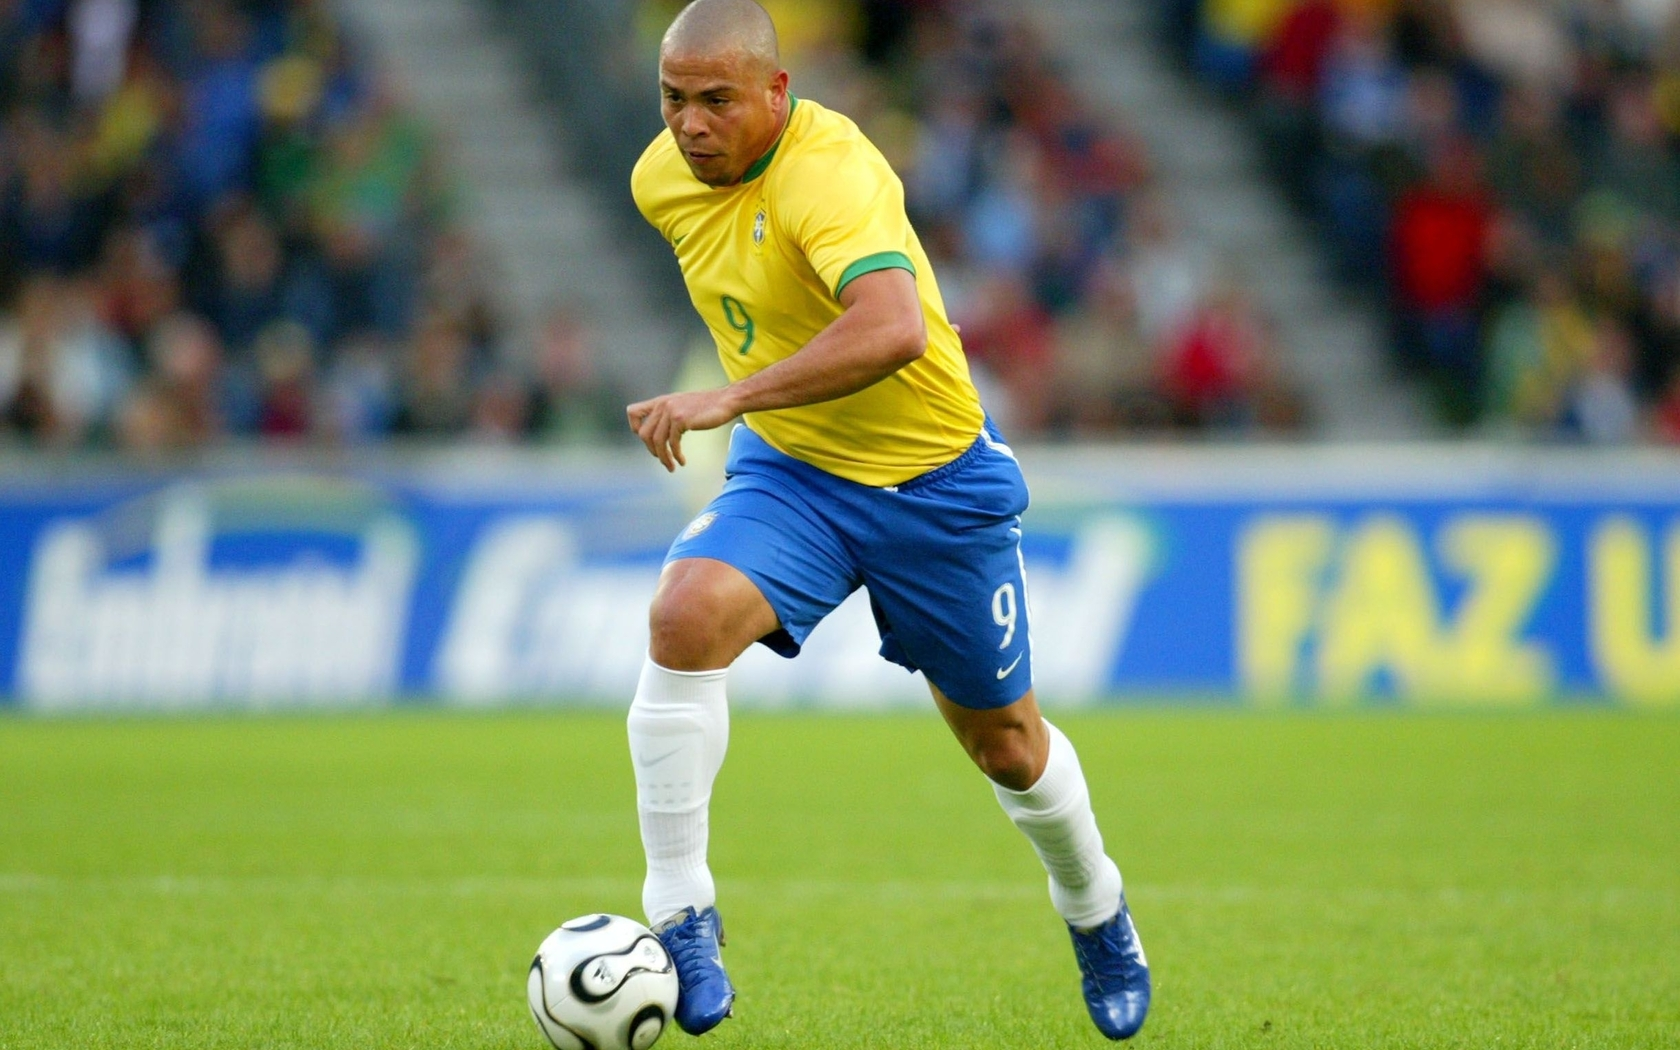 the best players in the history of Brazil